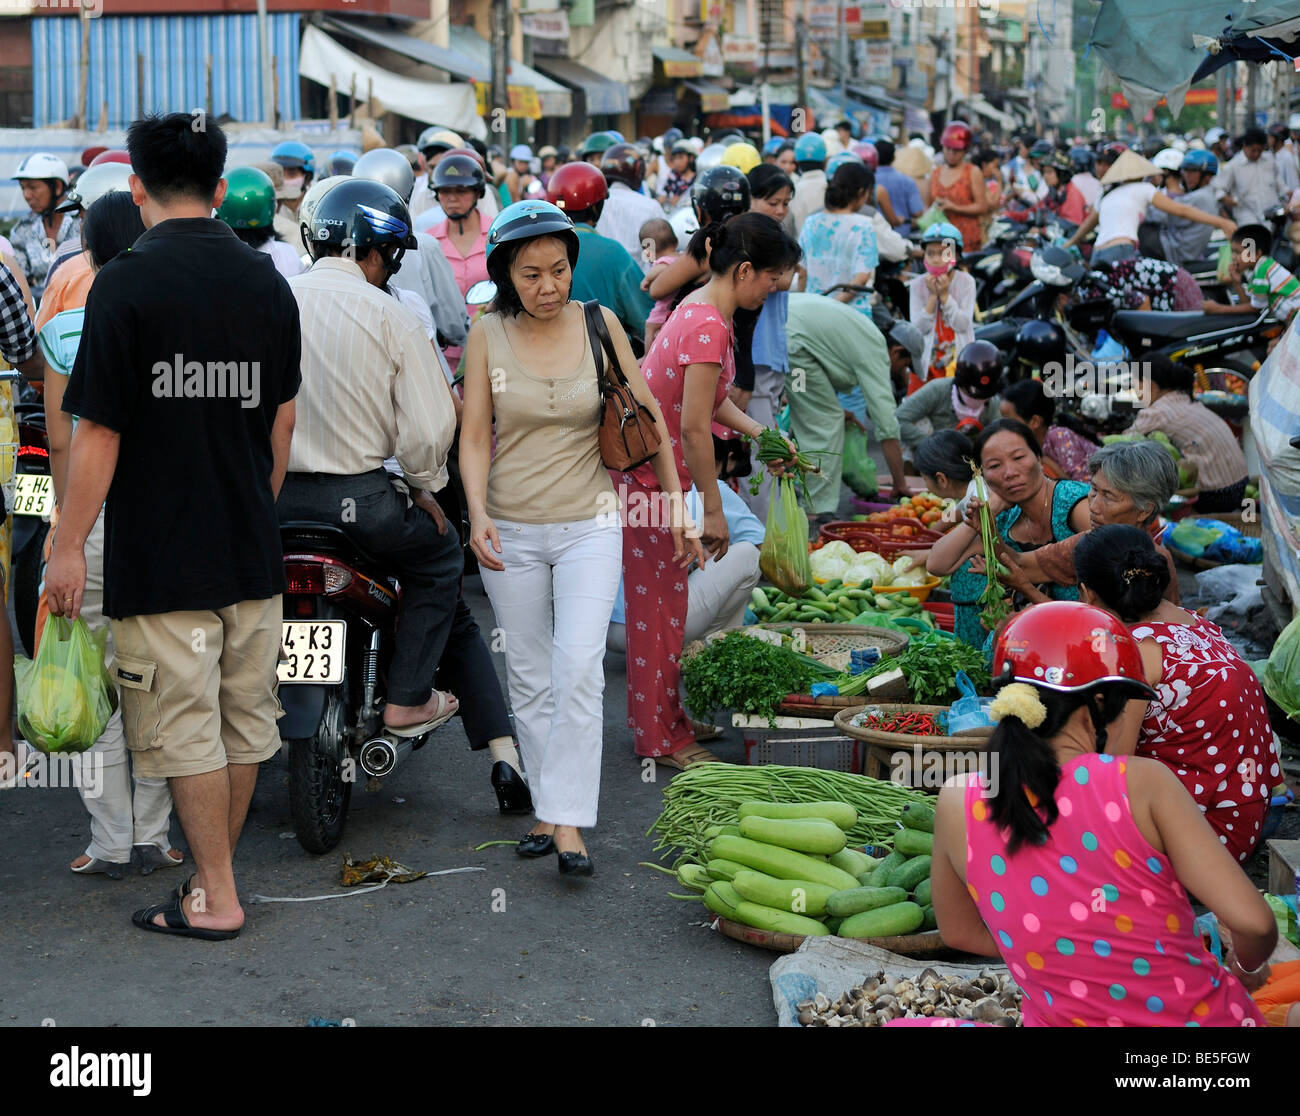 Many people crowd on the road at a street market, Vinh Longh, Mekong Delta, Vietnam, Asia - Stock Image